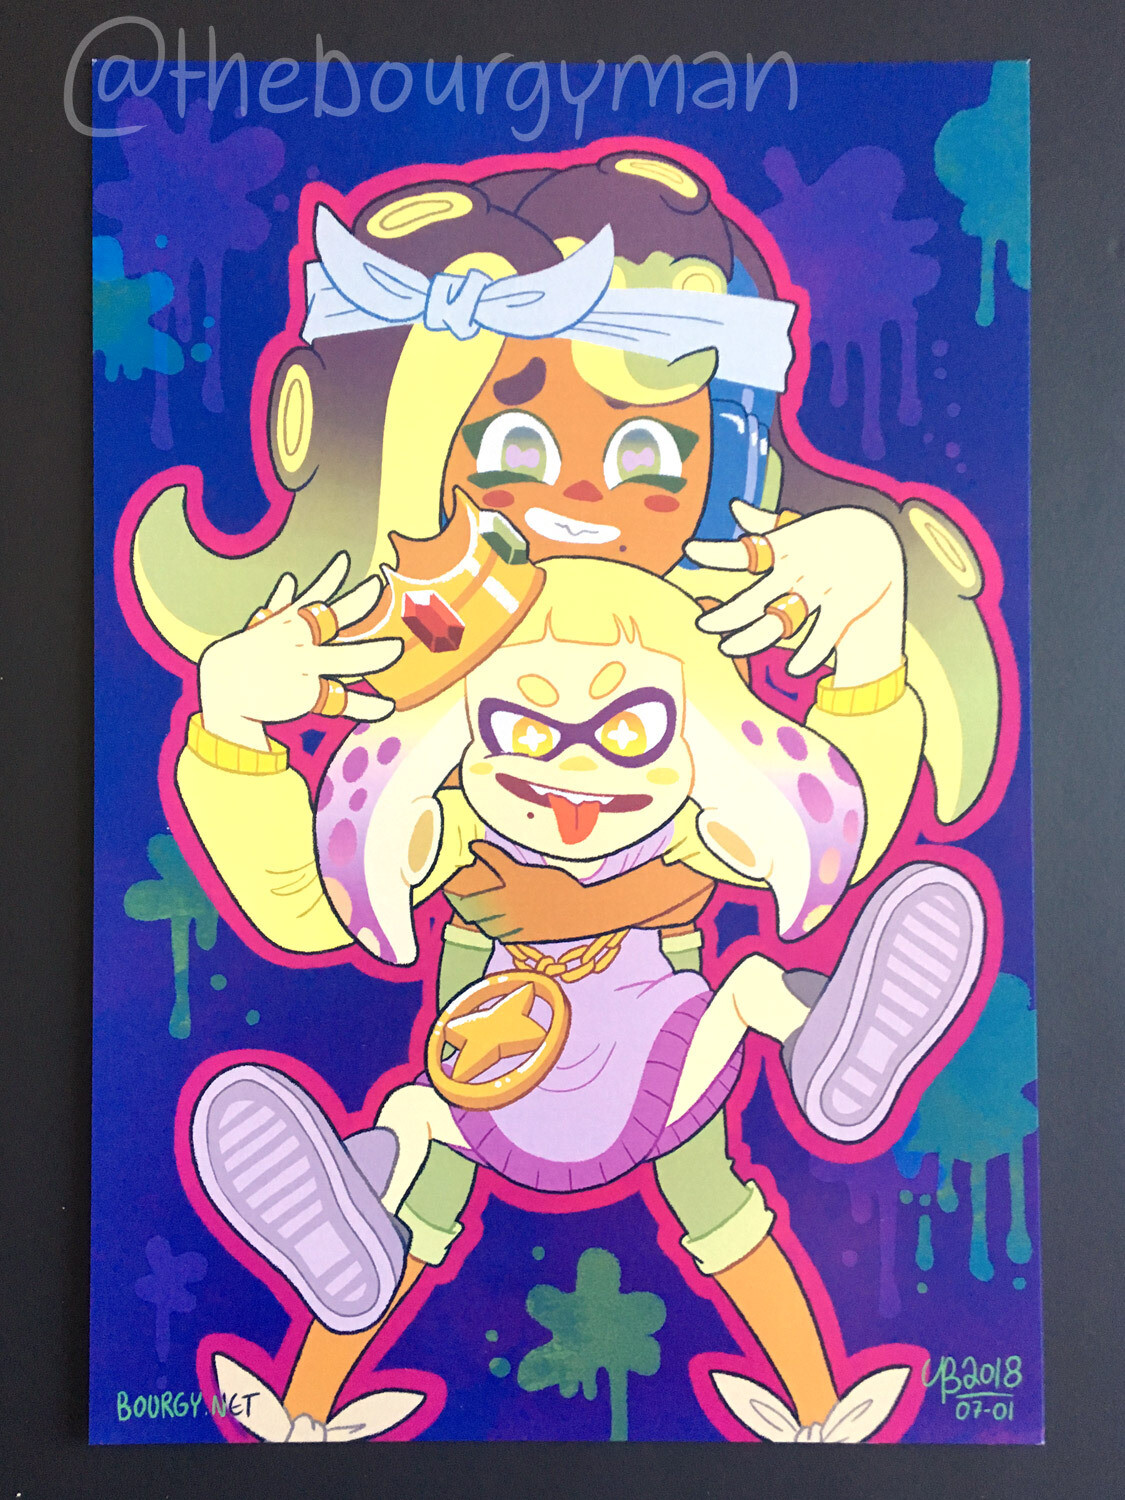 Off The Hook (Splatoon 2) poster/affiche